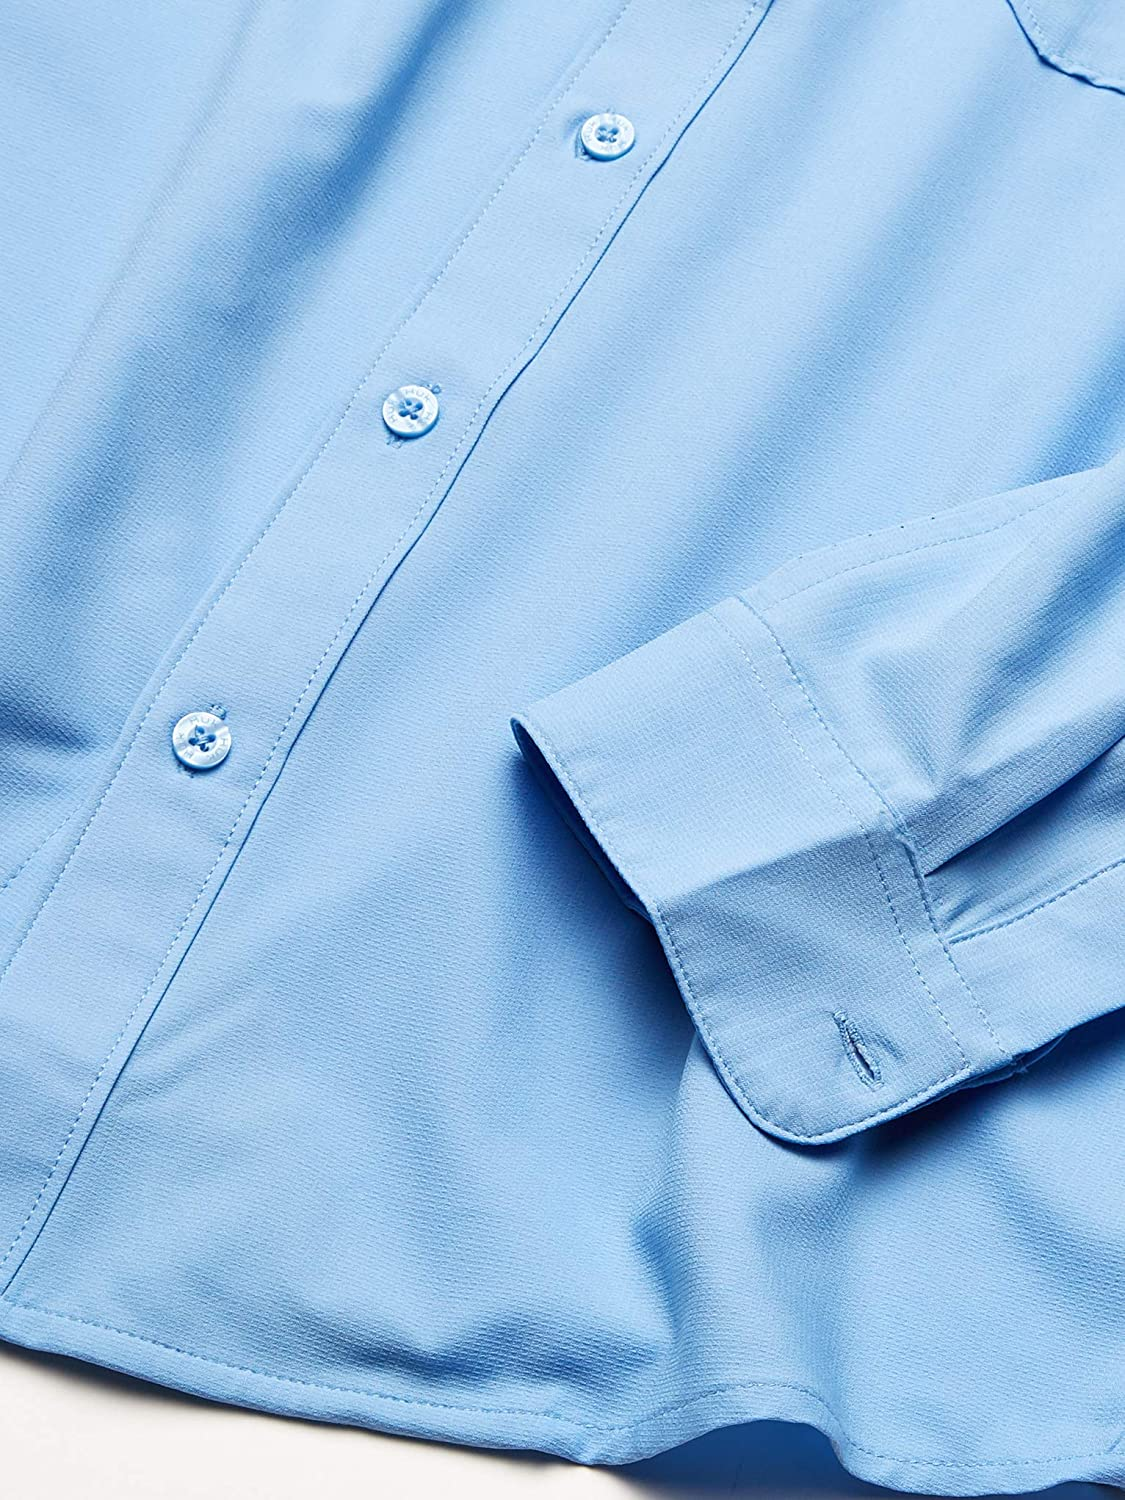 Button Down Performance Shirt With Upf 30 HUK mens Tide Point Woven Solid Long Sleeve Shirt Sun Protection